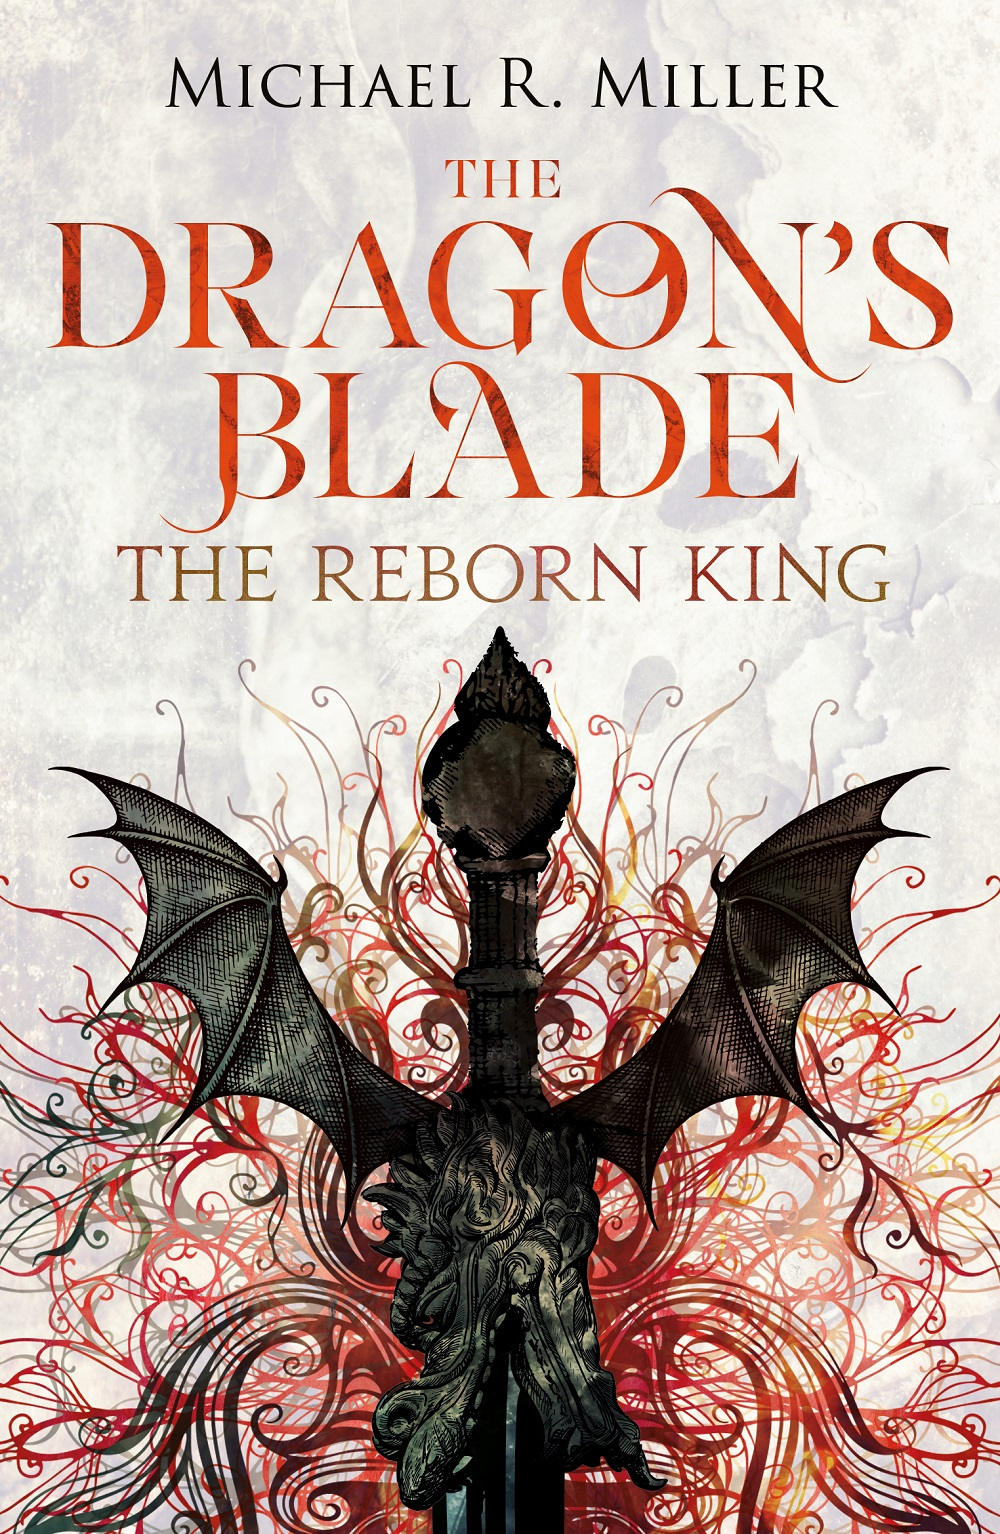 The Dragon's Blade: The Reborn King Was Also Reviewed By The Lovely Ladies  Over At Bibliosanctum And While They Said Some Lovely Things About It,